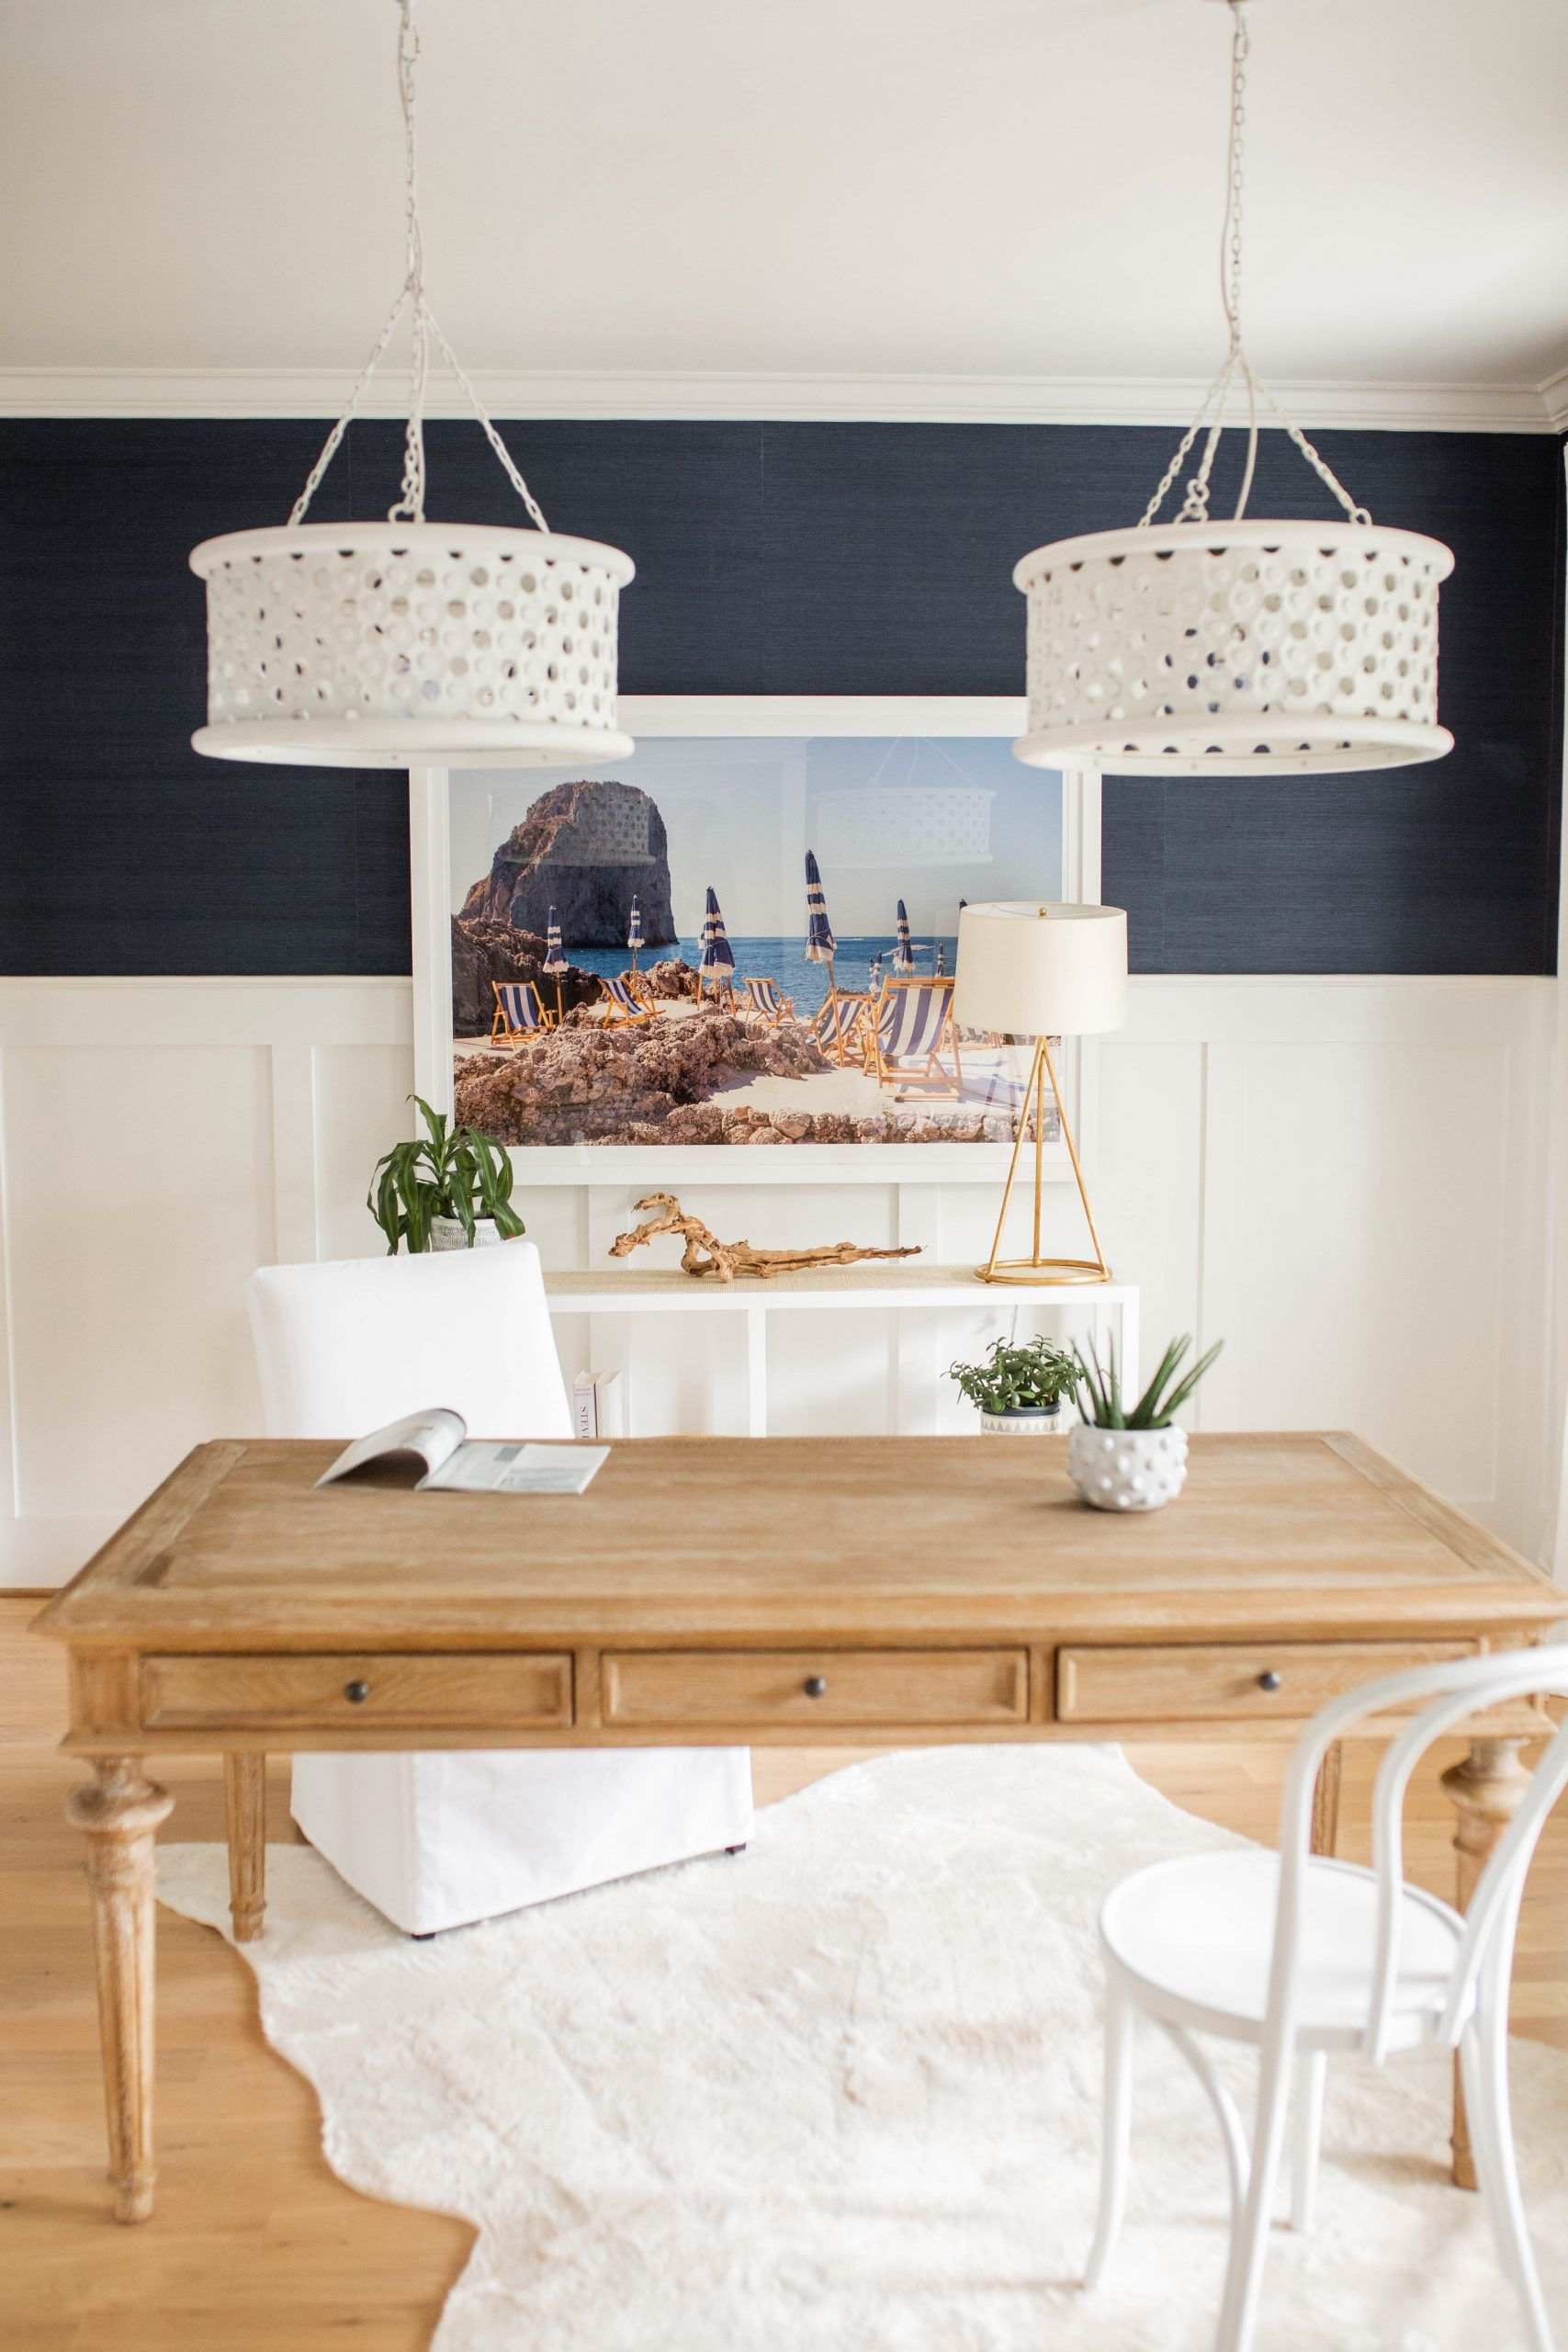 4 Gray Malin Prints In Our Home in 2020   White round dining table, Home  decor, White home decor